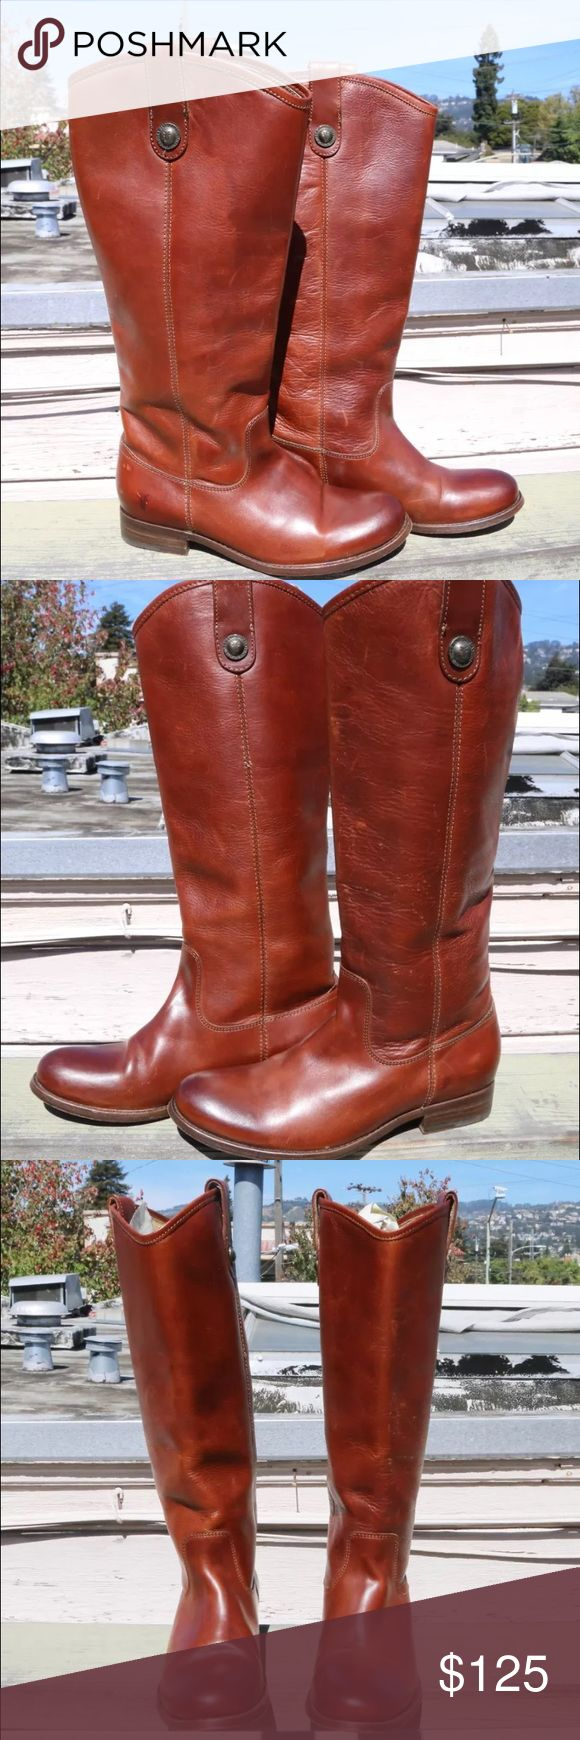 """Frye 'Melissa Button' Boot in Cognac  - Size 6B Frye 'Melissa Button' Boots in Cognac Size: 6B Regular Retail Price: $328   Button-accented pull tabs top a handcrafted riding boot fashioned from fine burnished leather for a marbled, vintage look. Pull-on style. Foam-cushioned midsole. Approx heel height: 1"""", boot shaft height: 16"""", calf circumference: 15""""  Leather upper, lining and sole. Inside of boot shaft reads: 77167  6 4001 D 10 Made in Mexico    Pre owned in great condition, worn only…"""